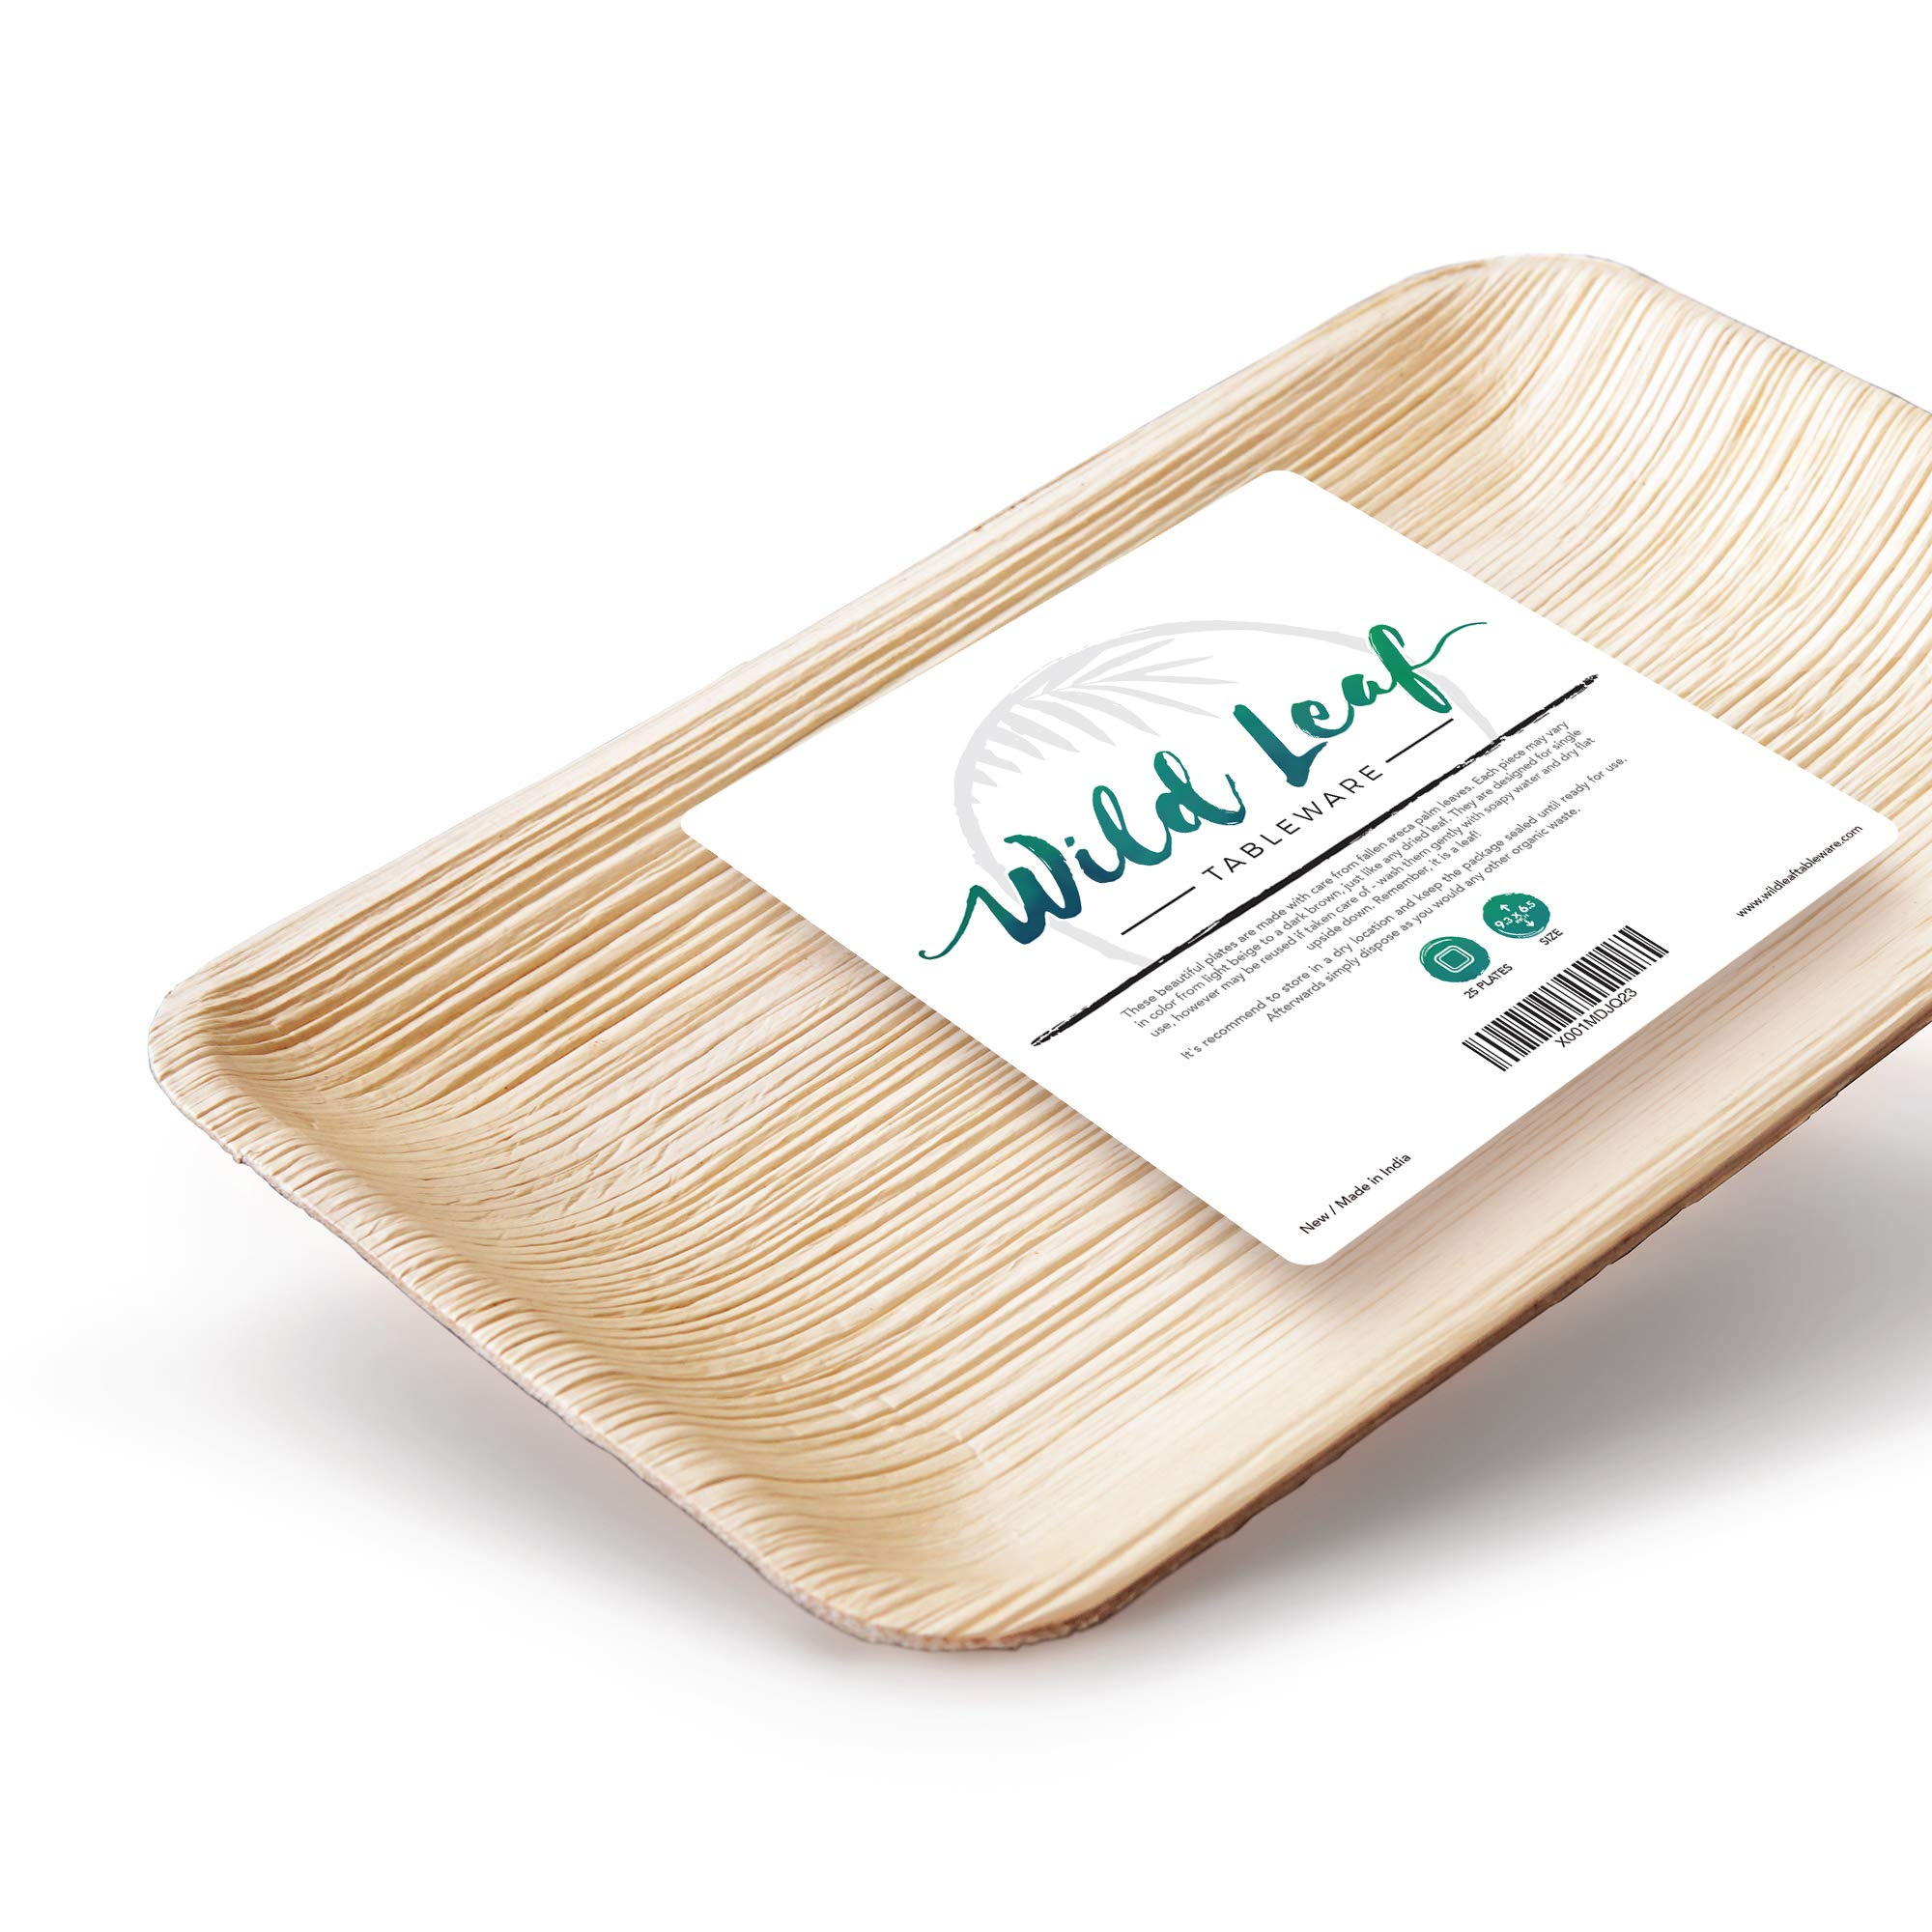 Rectangular Palm Leaf Plates 9.5 x 6 Inch, 25 Pack. Natural, Eco-friendly, Plastic-Free Disposable Party Pack by Wild Leaf Tableware